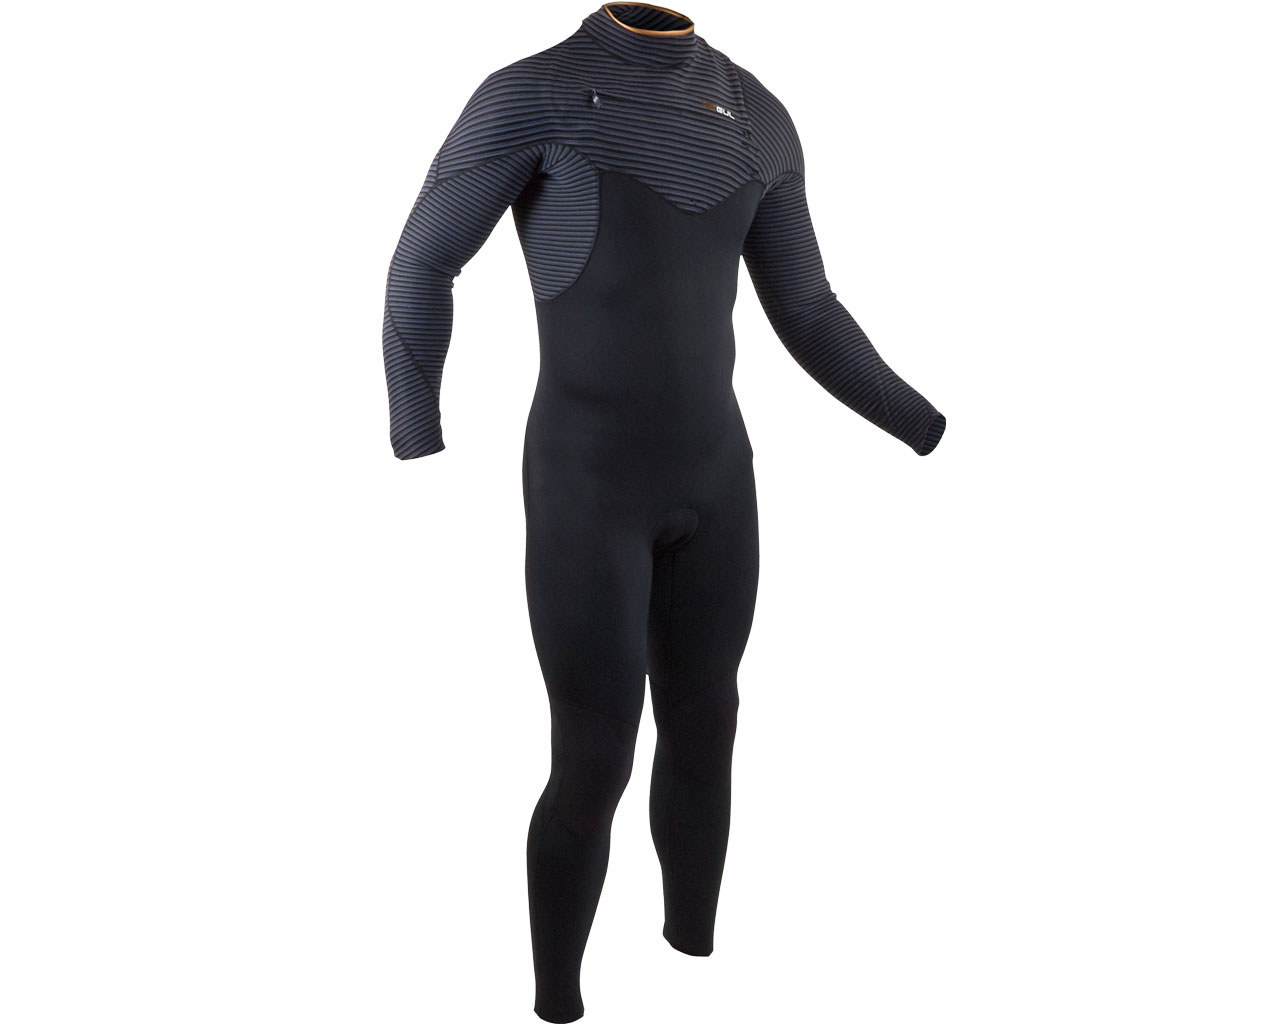 Gul FW20/21 Wetsuit Preview